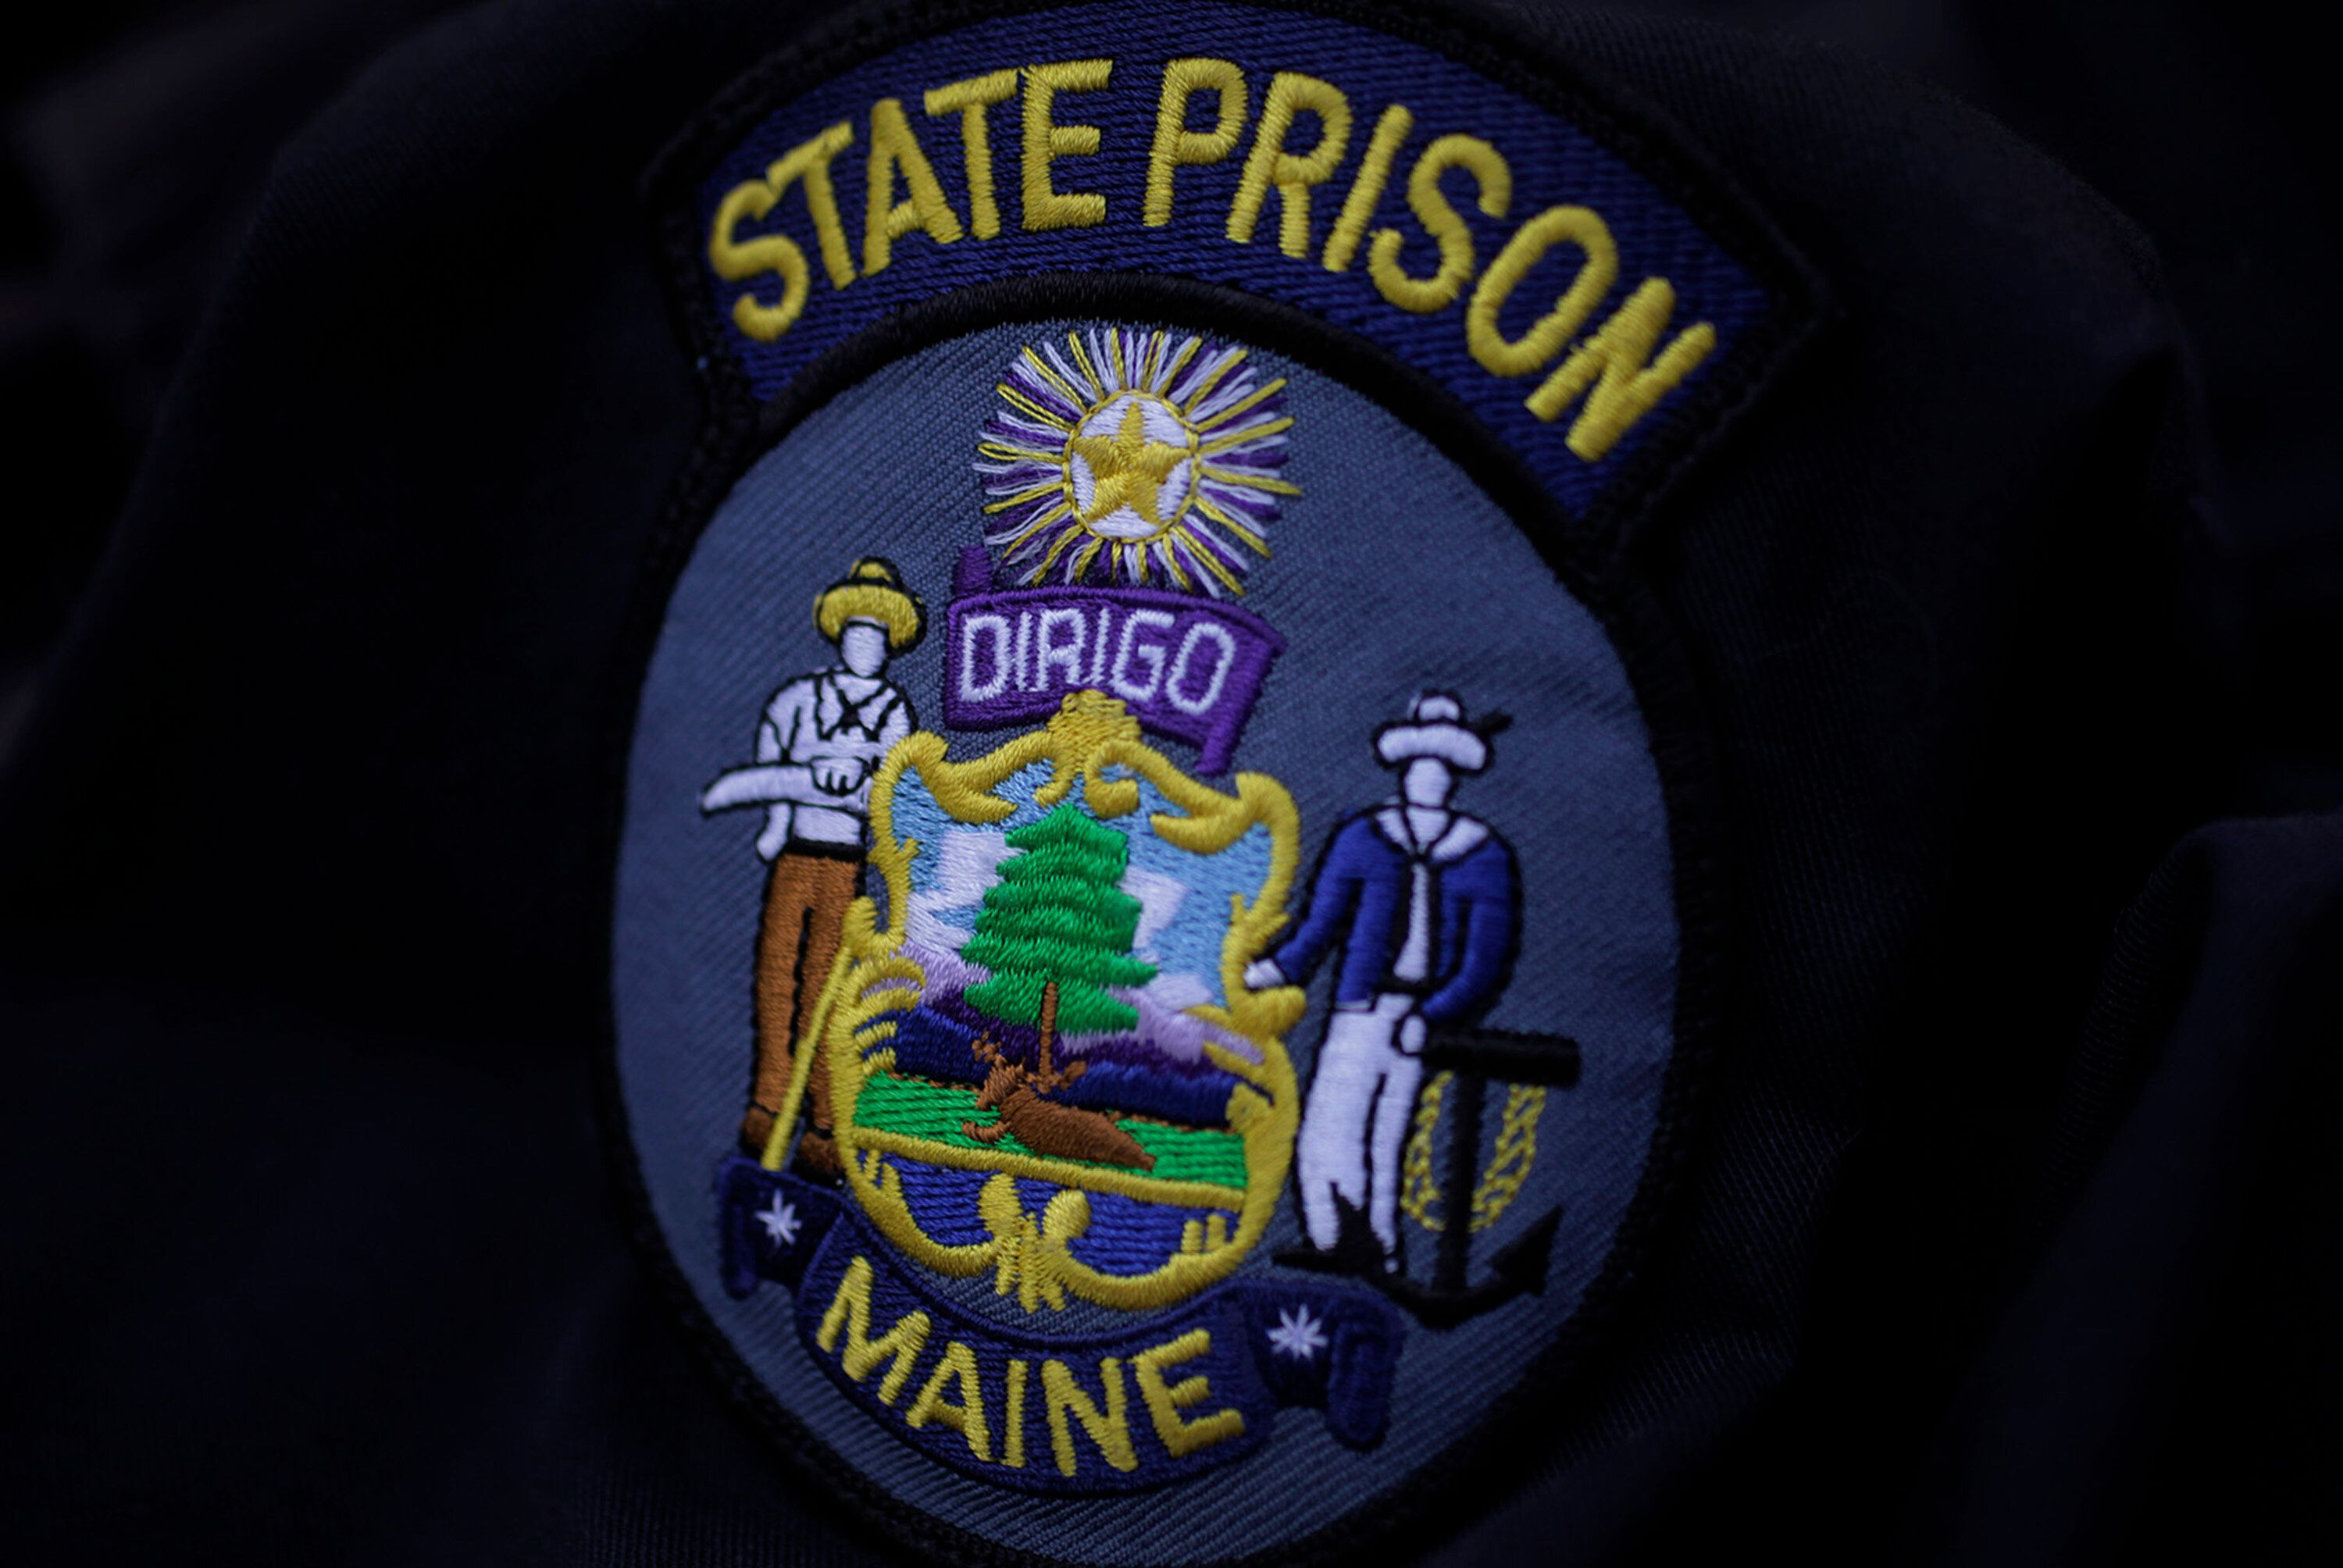 AUGUSTA, ME  AUGUST 24: A state prison guard uniform worn by Cory Peaslee shows the seal of the Dept. of Corrections, Sun. August  24, 2014. Peaslee, 20, alleges that fellow guards and his supervisor hazed him last spring when he was new to the job. He no longer works at the prison. (Photo by Amelia Kunhardt/Portland Press Herald via Getty Images)